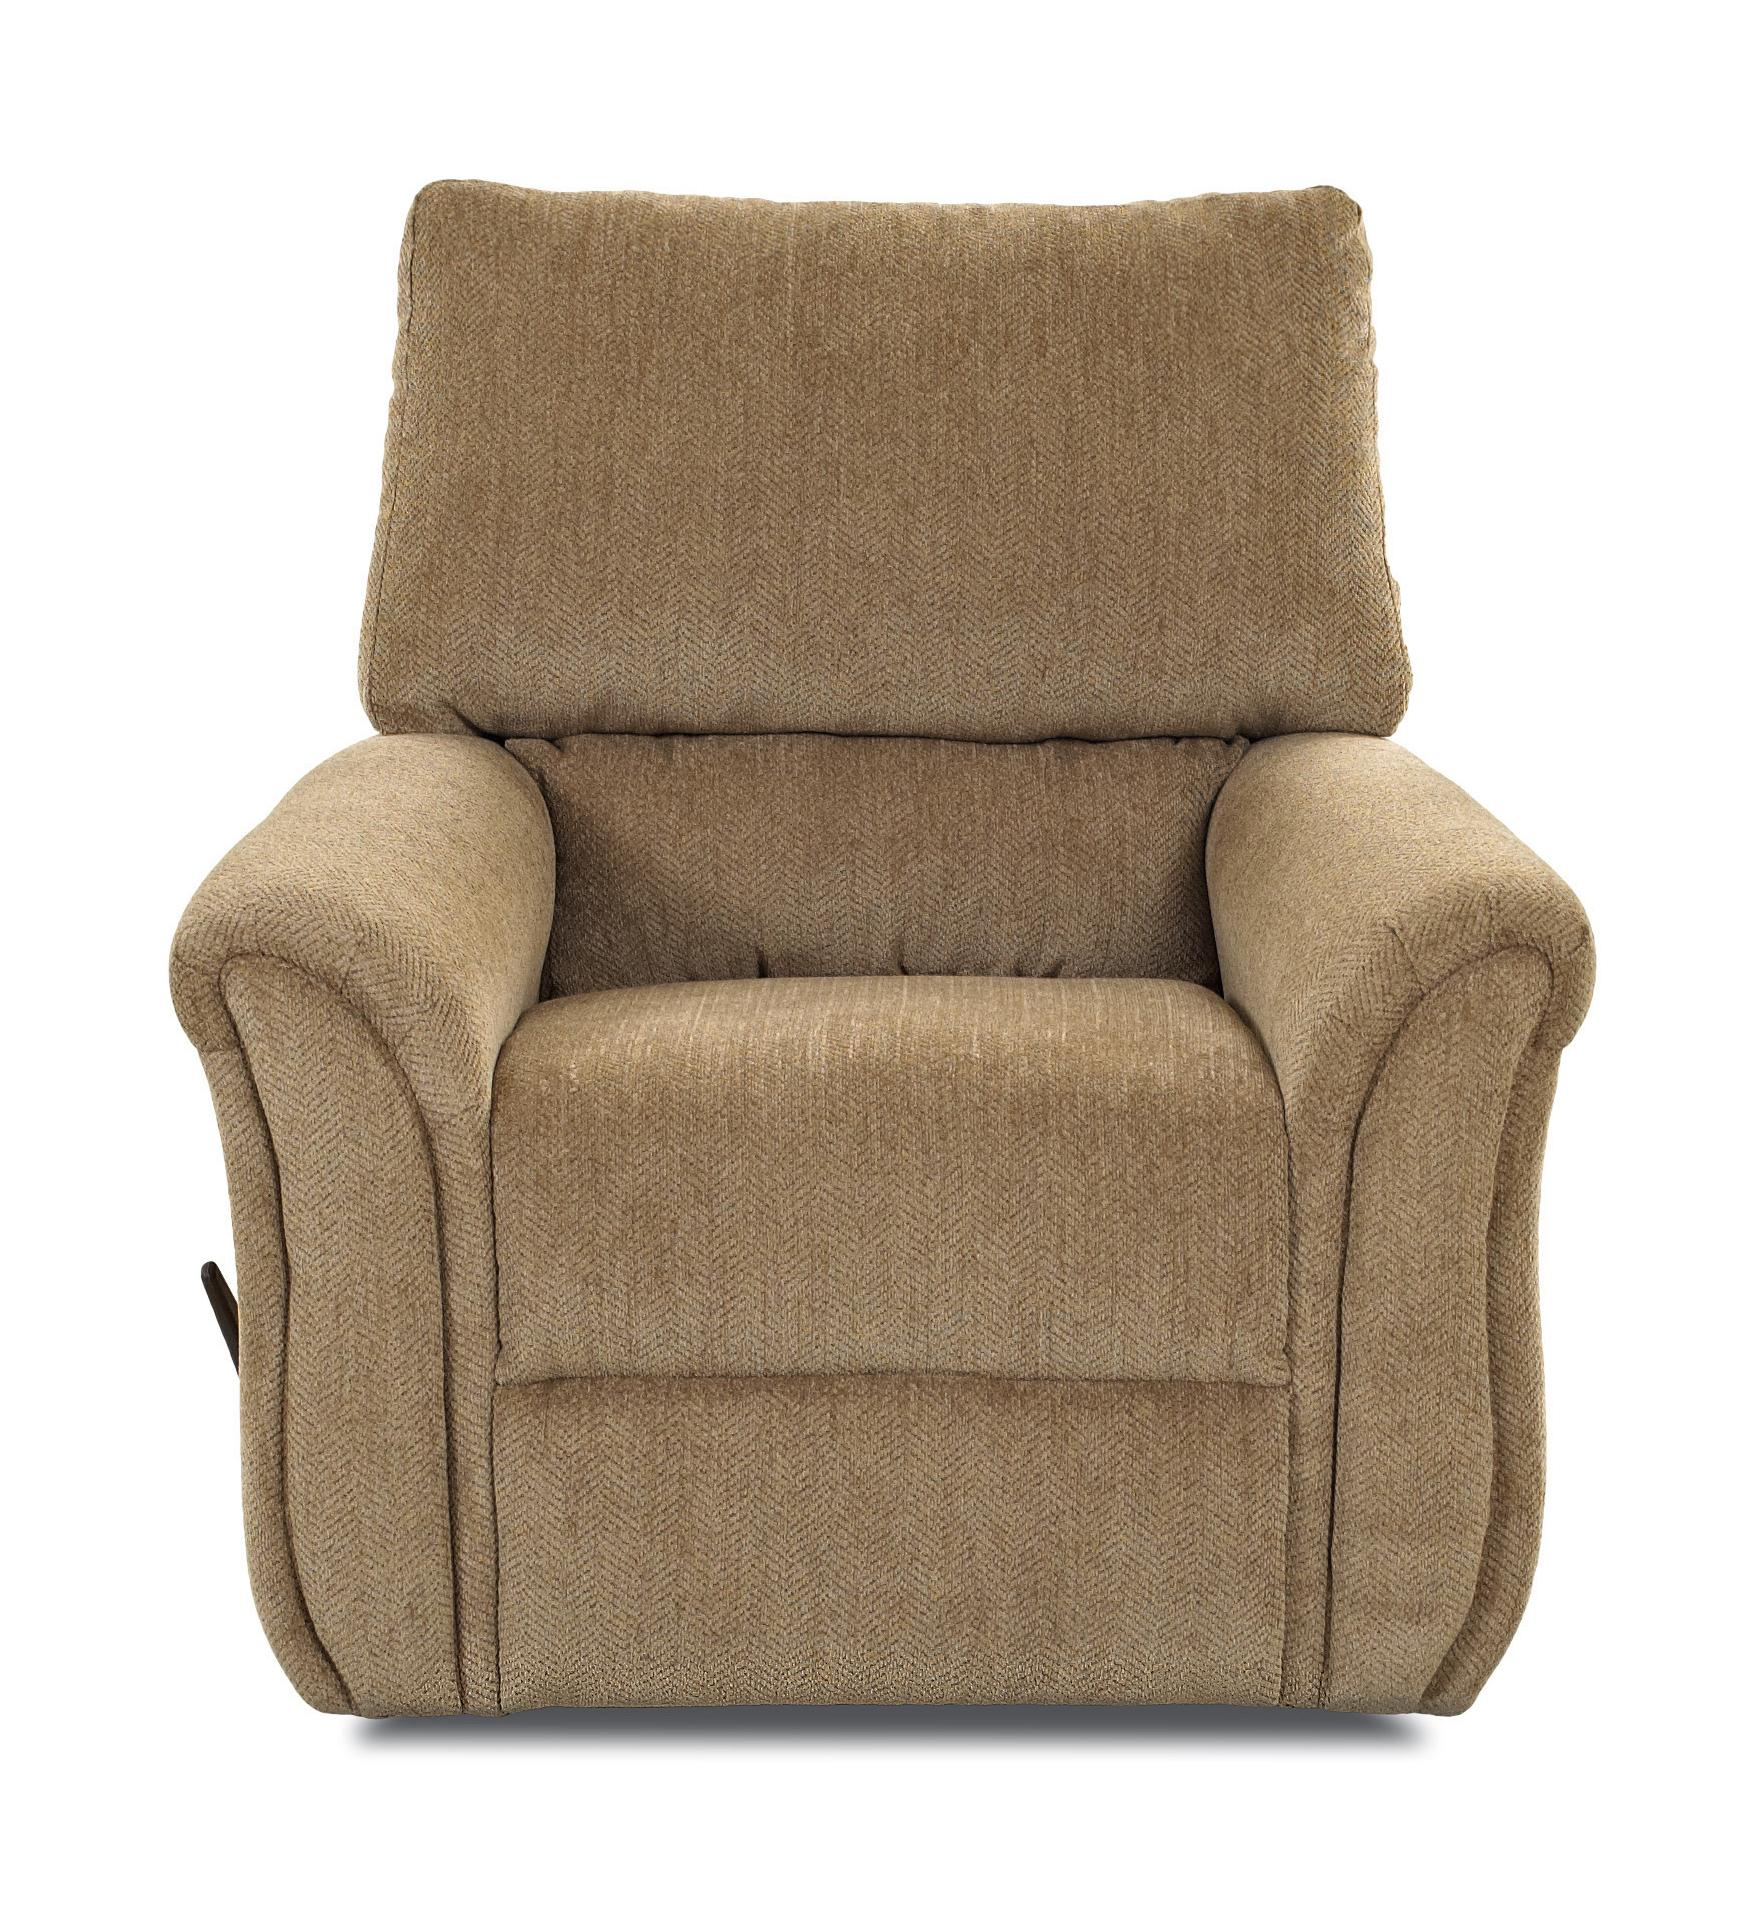 Klaussner Marcus 71903 Casual Power Reclining Chair - Item Number: 71903 PWRC-JollaAntique